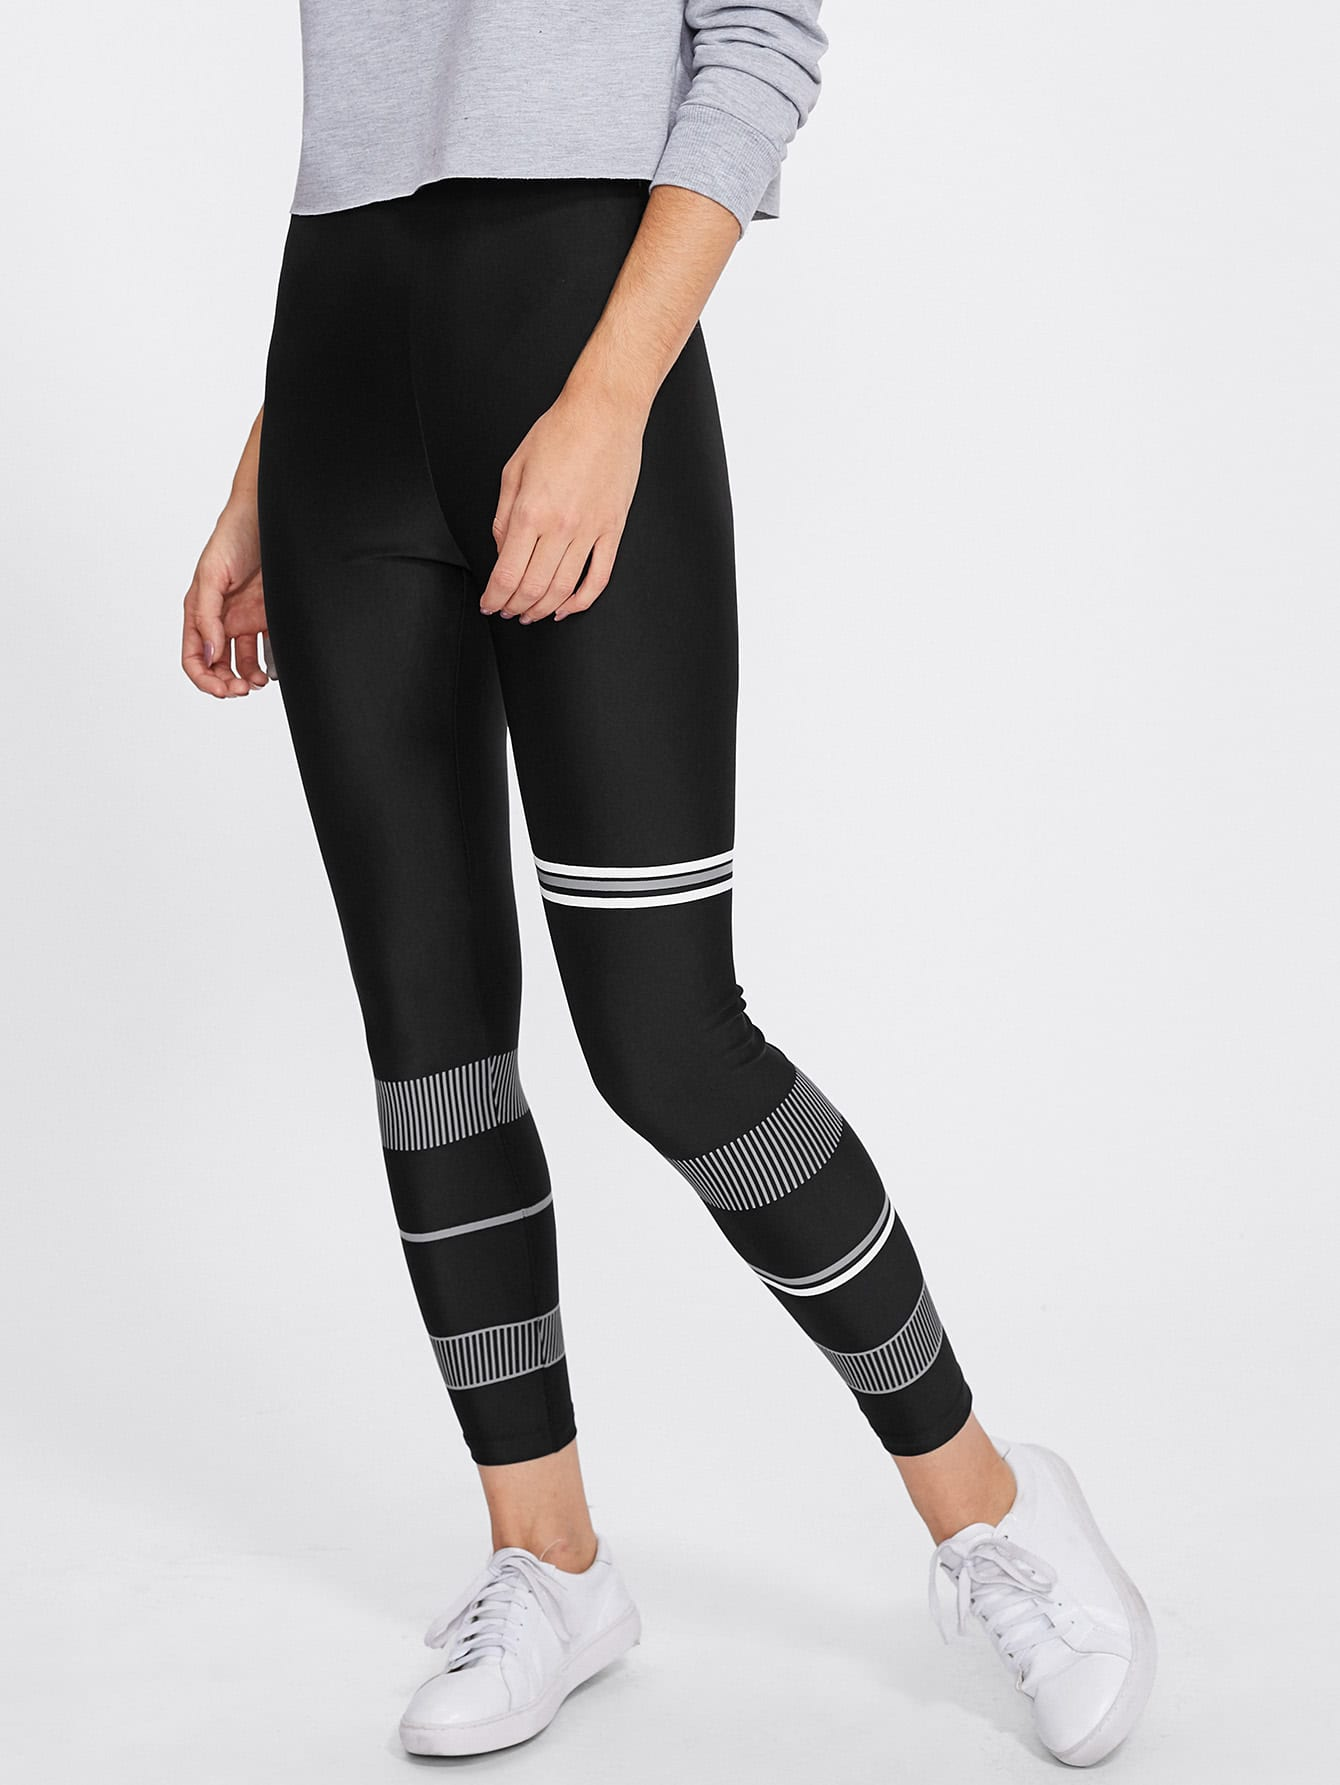 Mixed Stripe Print Leggings